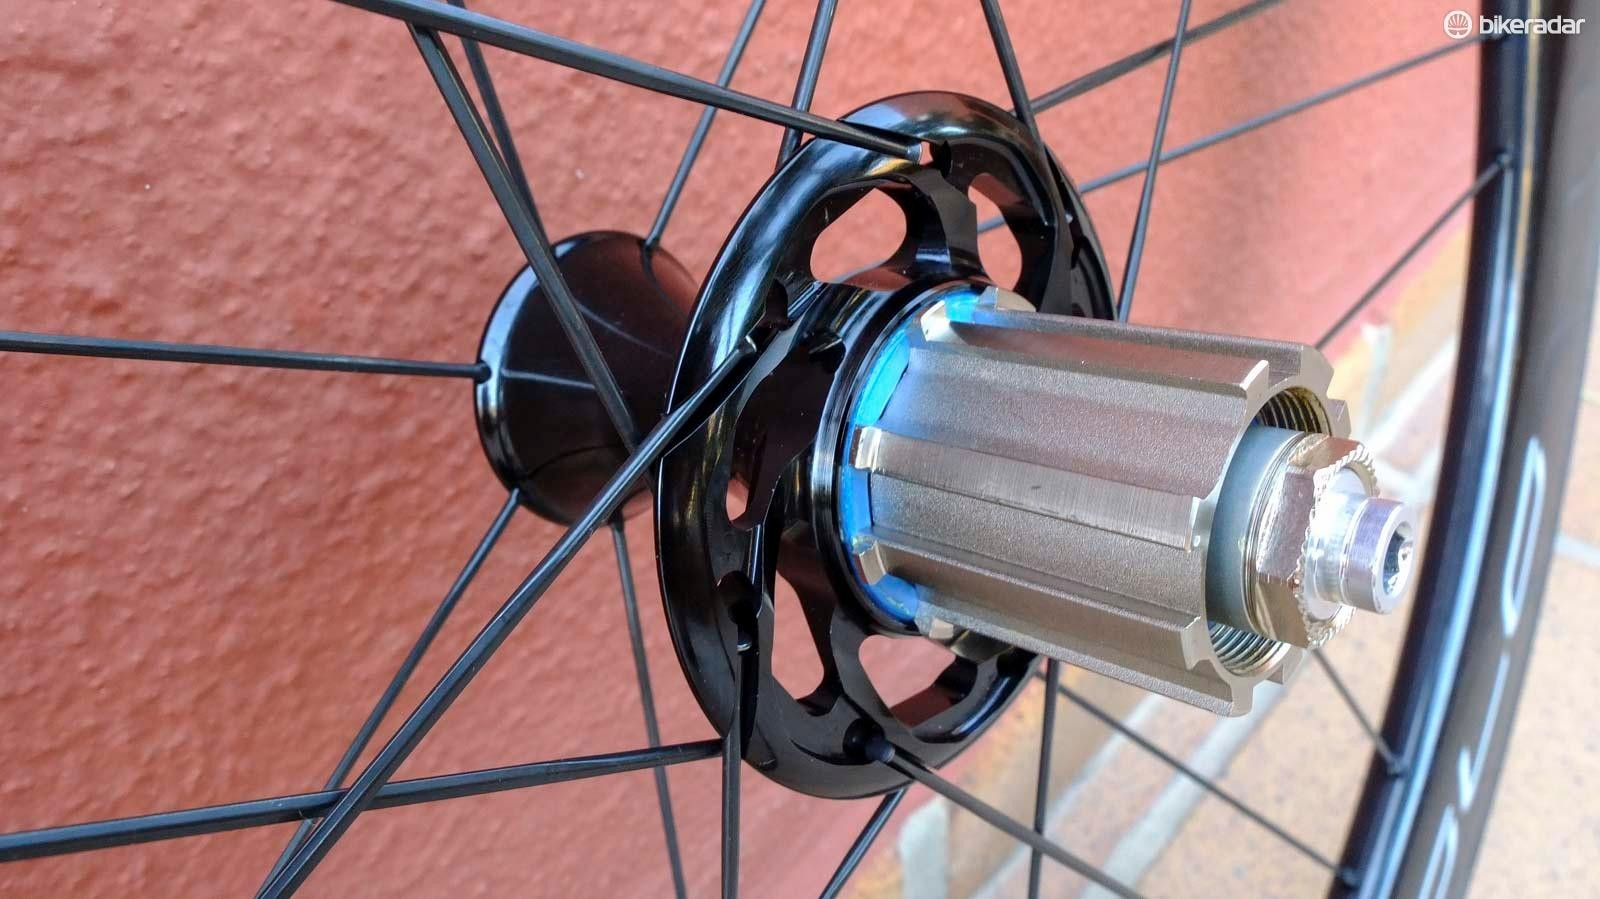 The rear hub uses an enlarged driveside flange and both have new diamond-profile straight-pull spokes